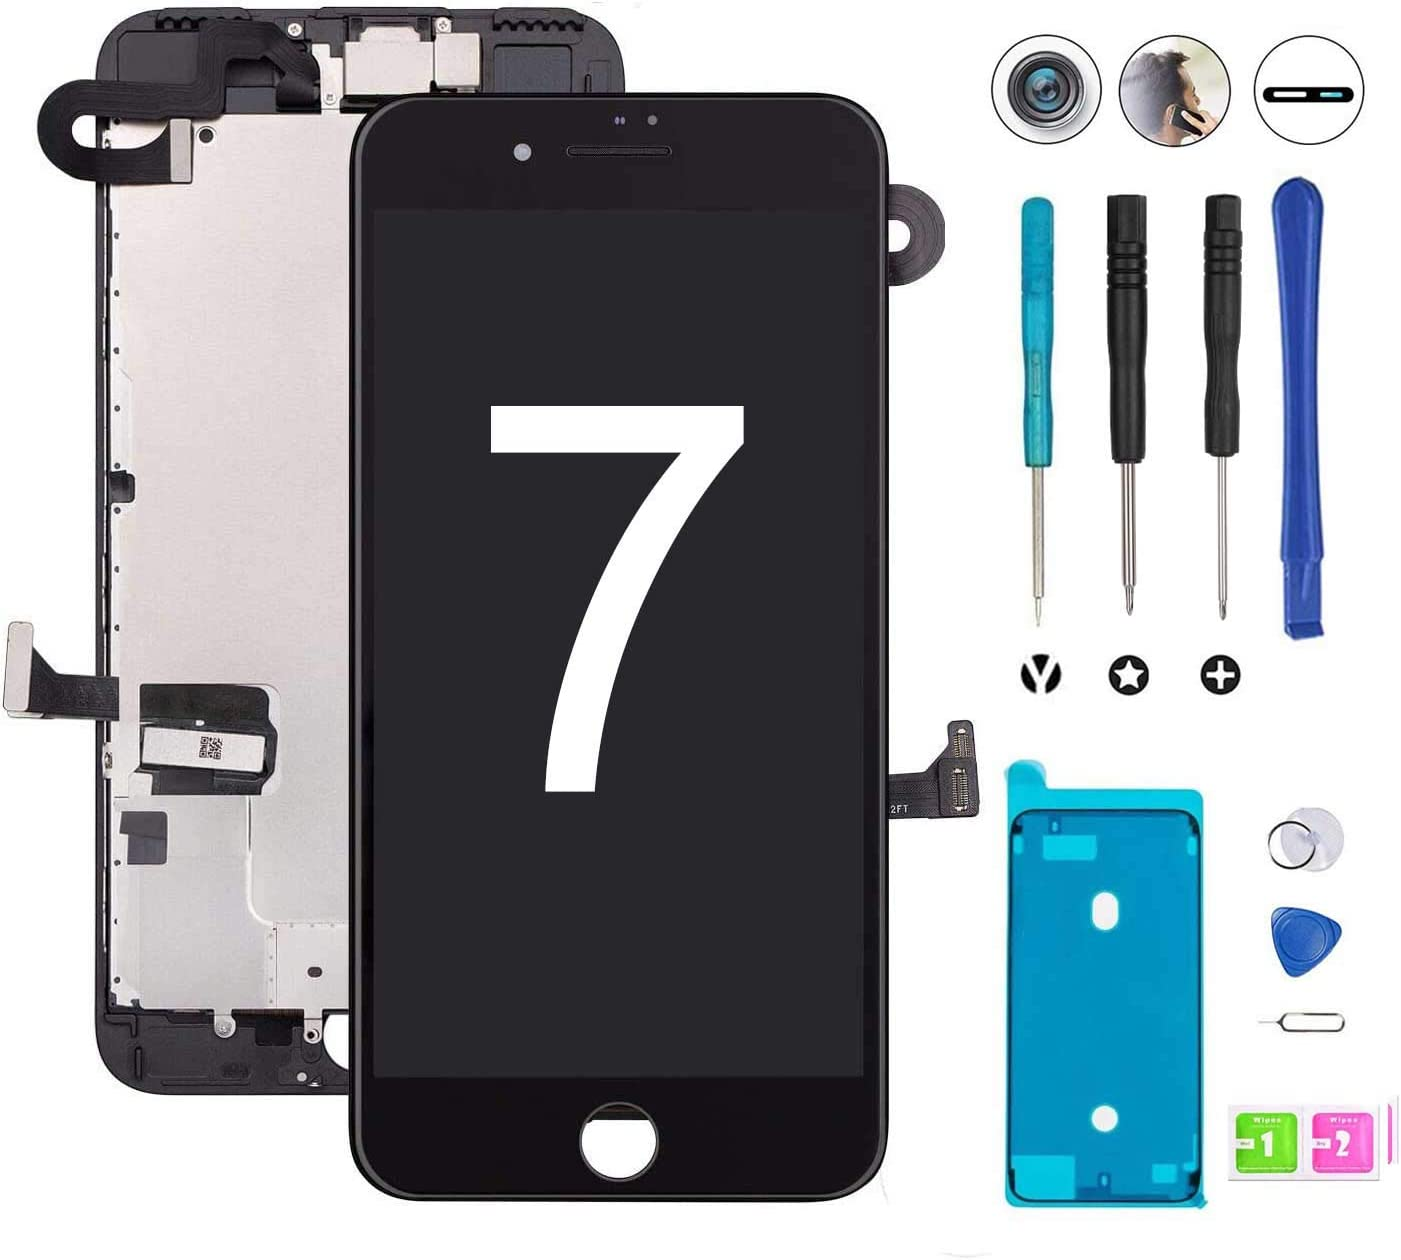 for iPhone 7 Screen Replacement Black LCD Display iPhone 7 Replacement Touch Screen Digitizer Full Assembly with Front Camera+ Earpiece+ Repair Tools Kit+ Waterproof Adhesive Strips (Black)